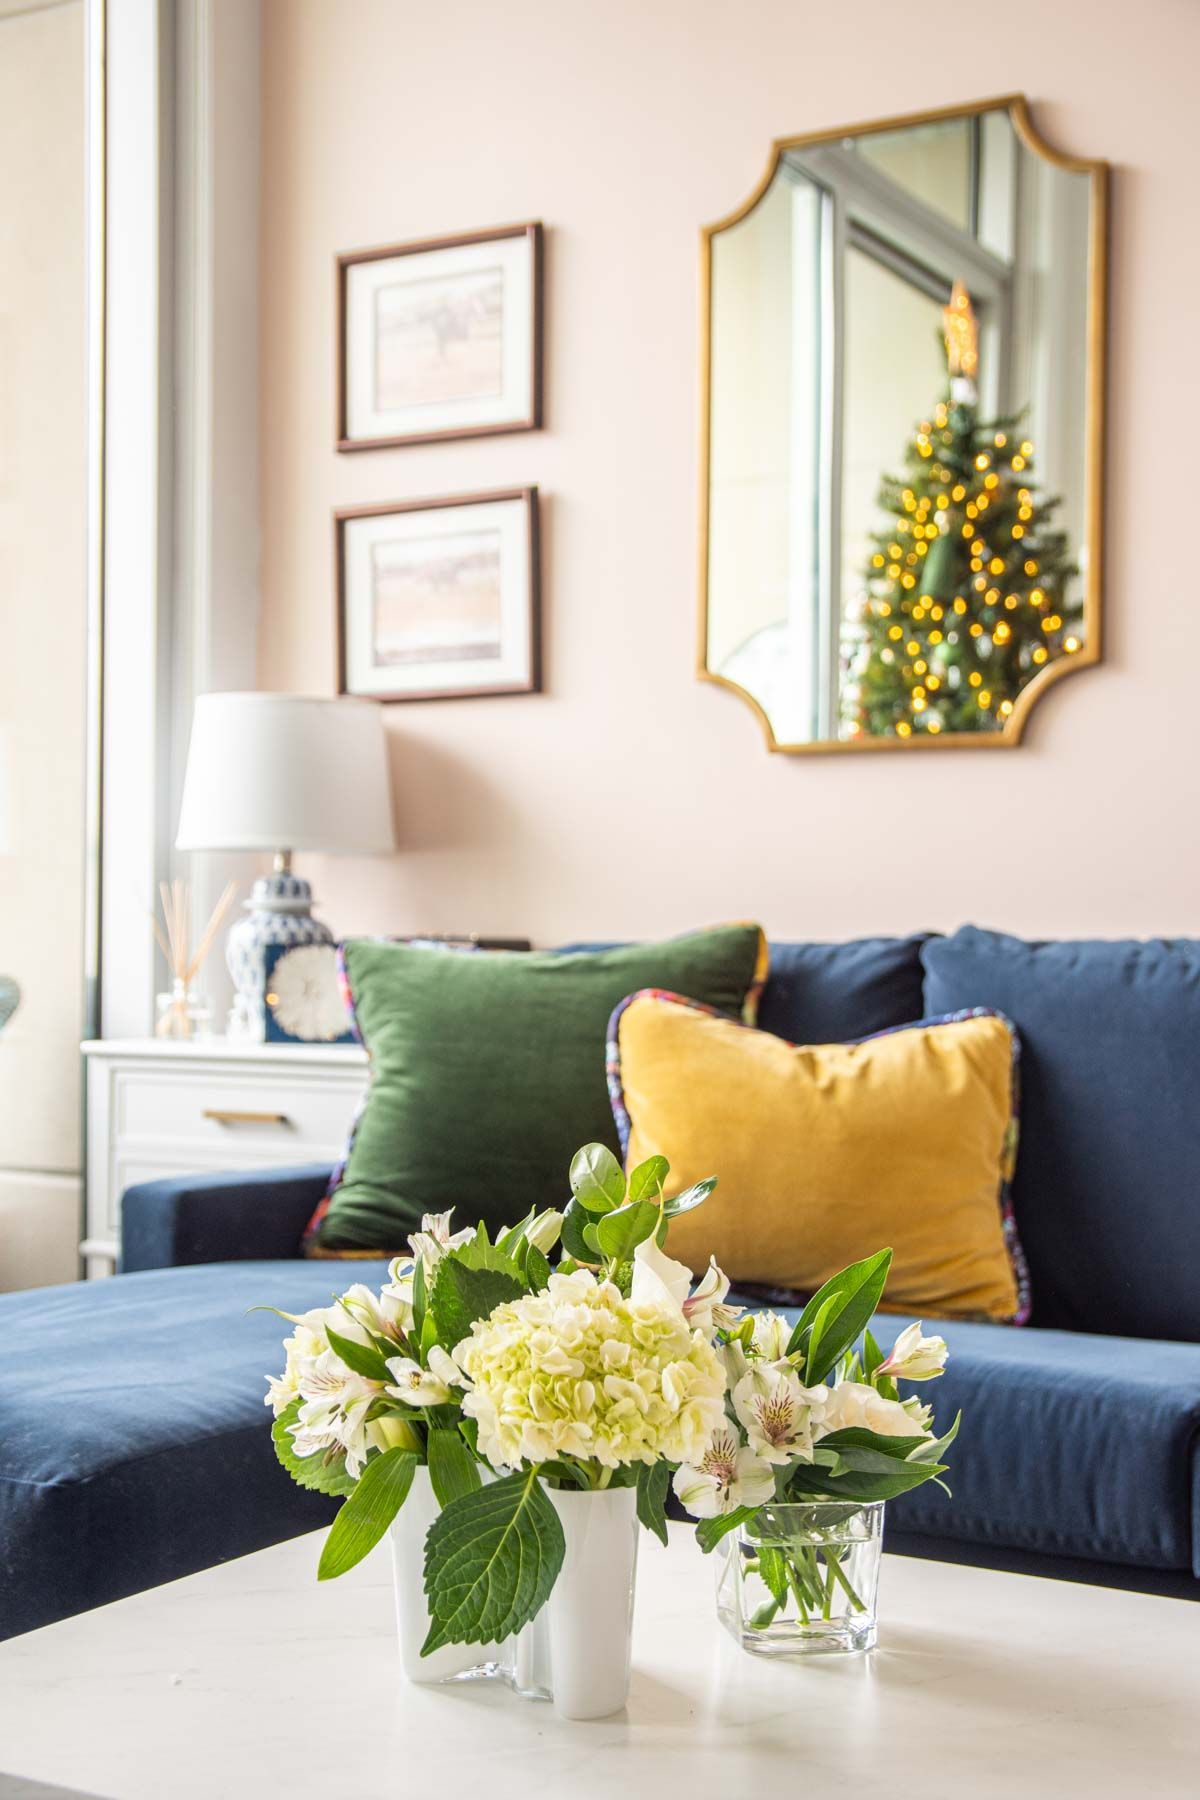 Jewel-tone Christmas tree holiday decor with tassels and boho style from SmithHönig in apartment living room by Kevin O'Gara on Thou Swell | Holiday Decorations living room #christmas #christmastree #christmasdecor #holidaydecor #bohodecor #bohochristmas #tassels #smithhonig #apartment #apartmentdecor #livingroomdesign